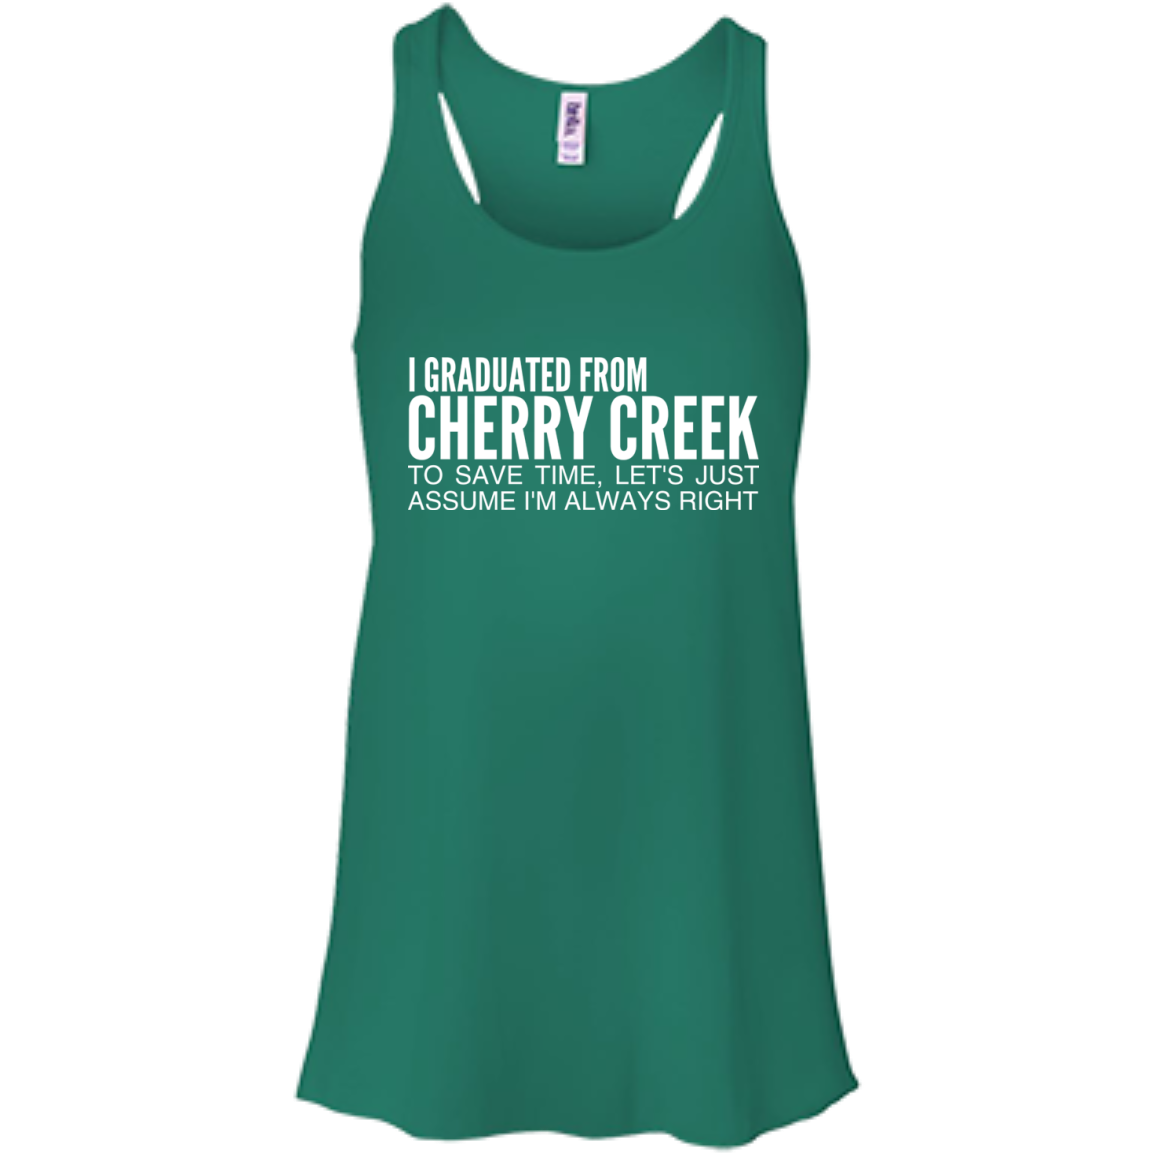 I Graduated From Cherry Creek To Save Time Lets Just Assume Im Always Right Flowy Racerback Tanks